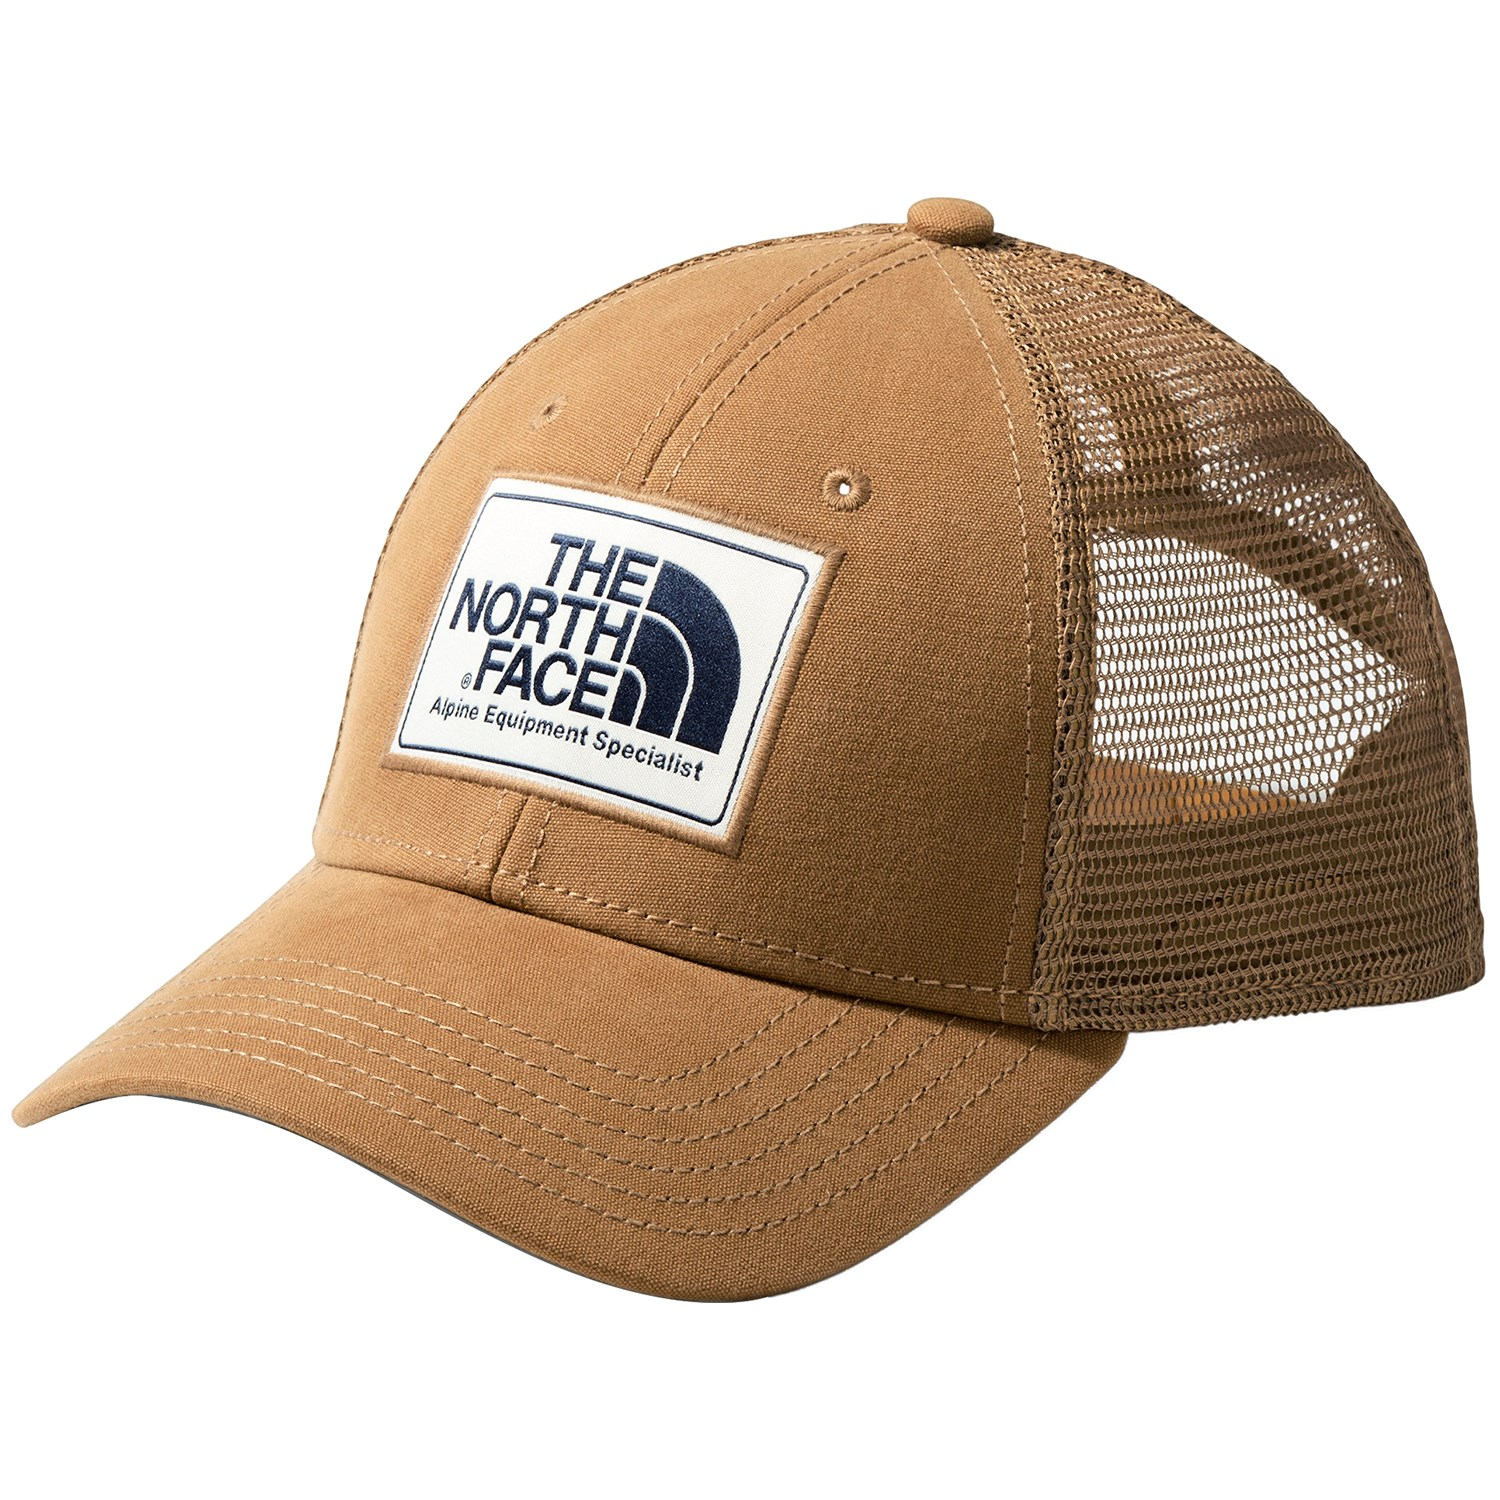 3a3b1d3f83fe7 The North Face Mudder Trucker Hat